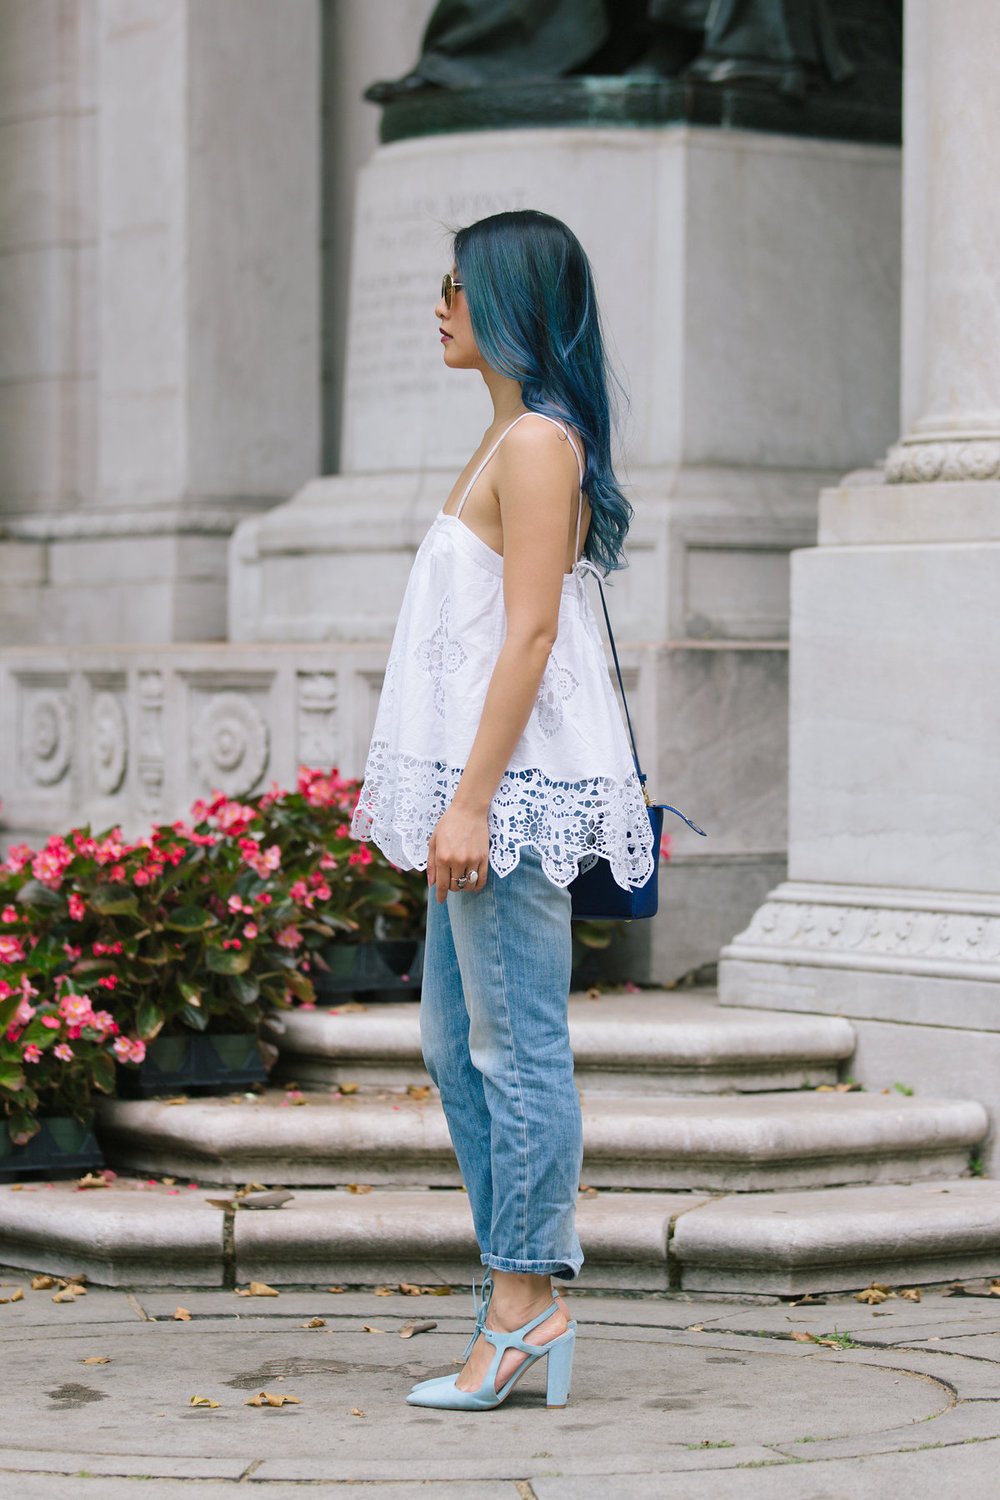 bluehair_lacetop7.jpg